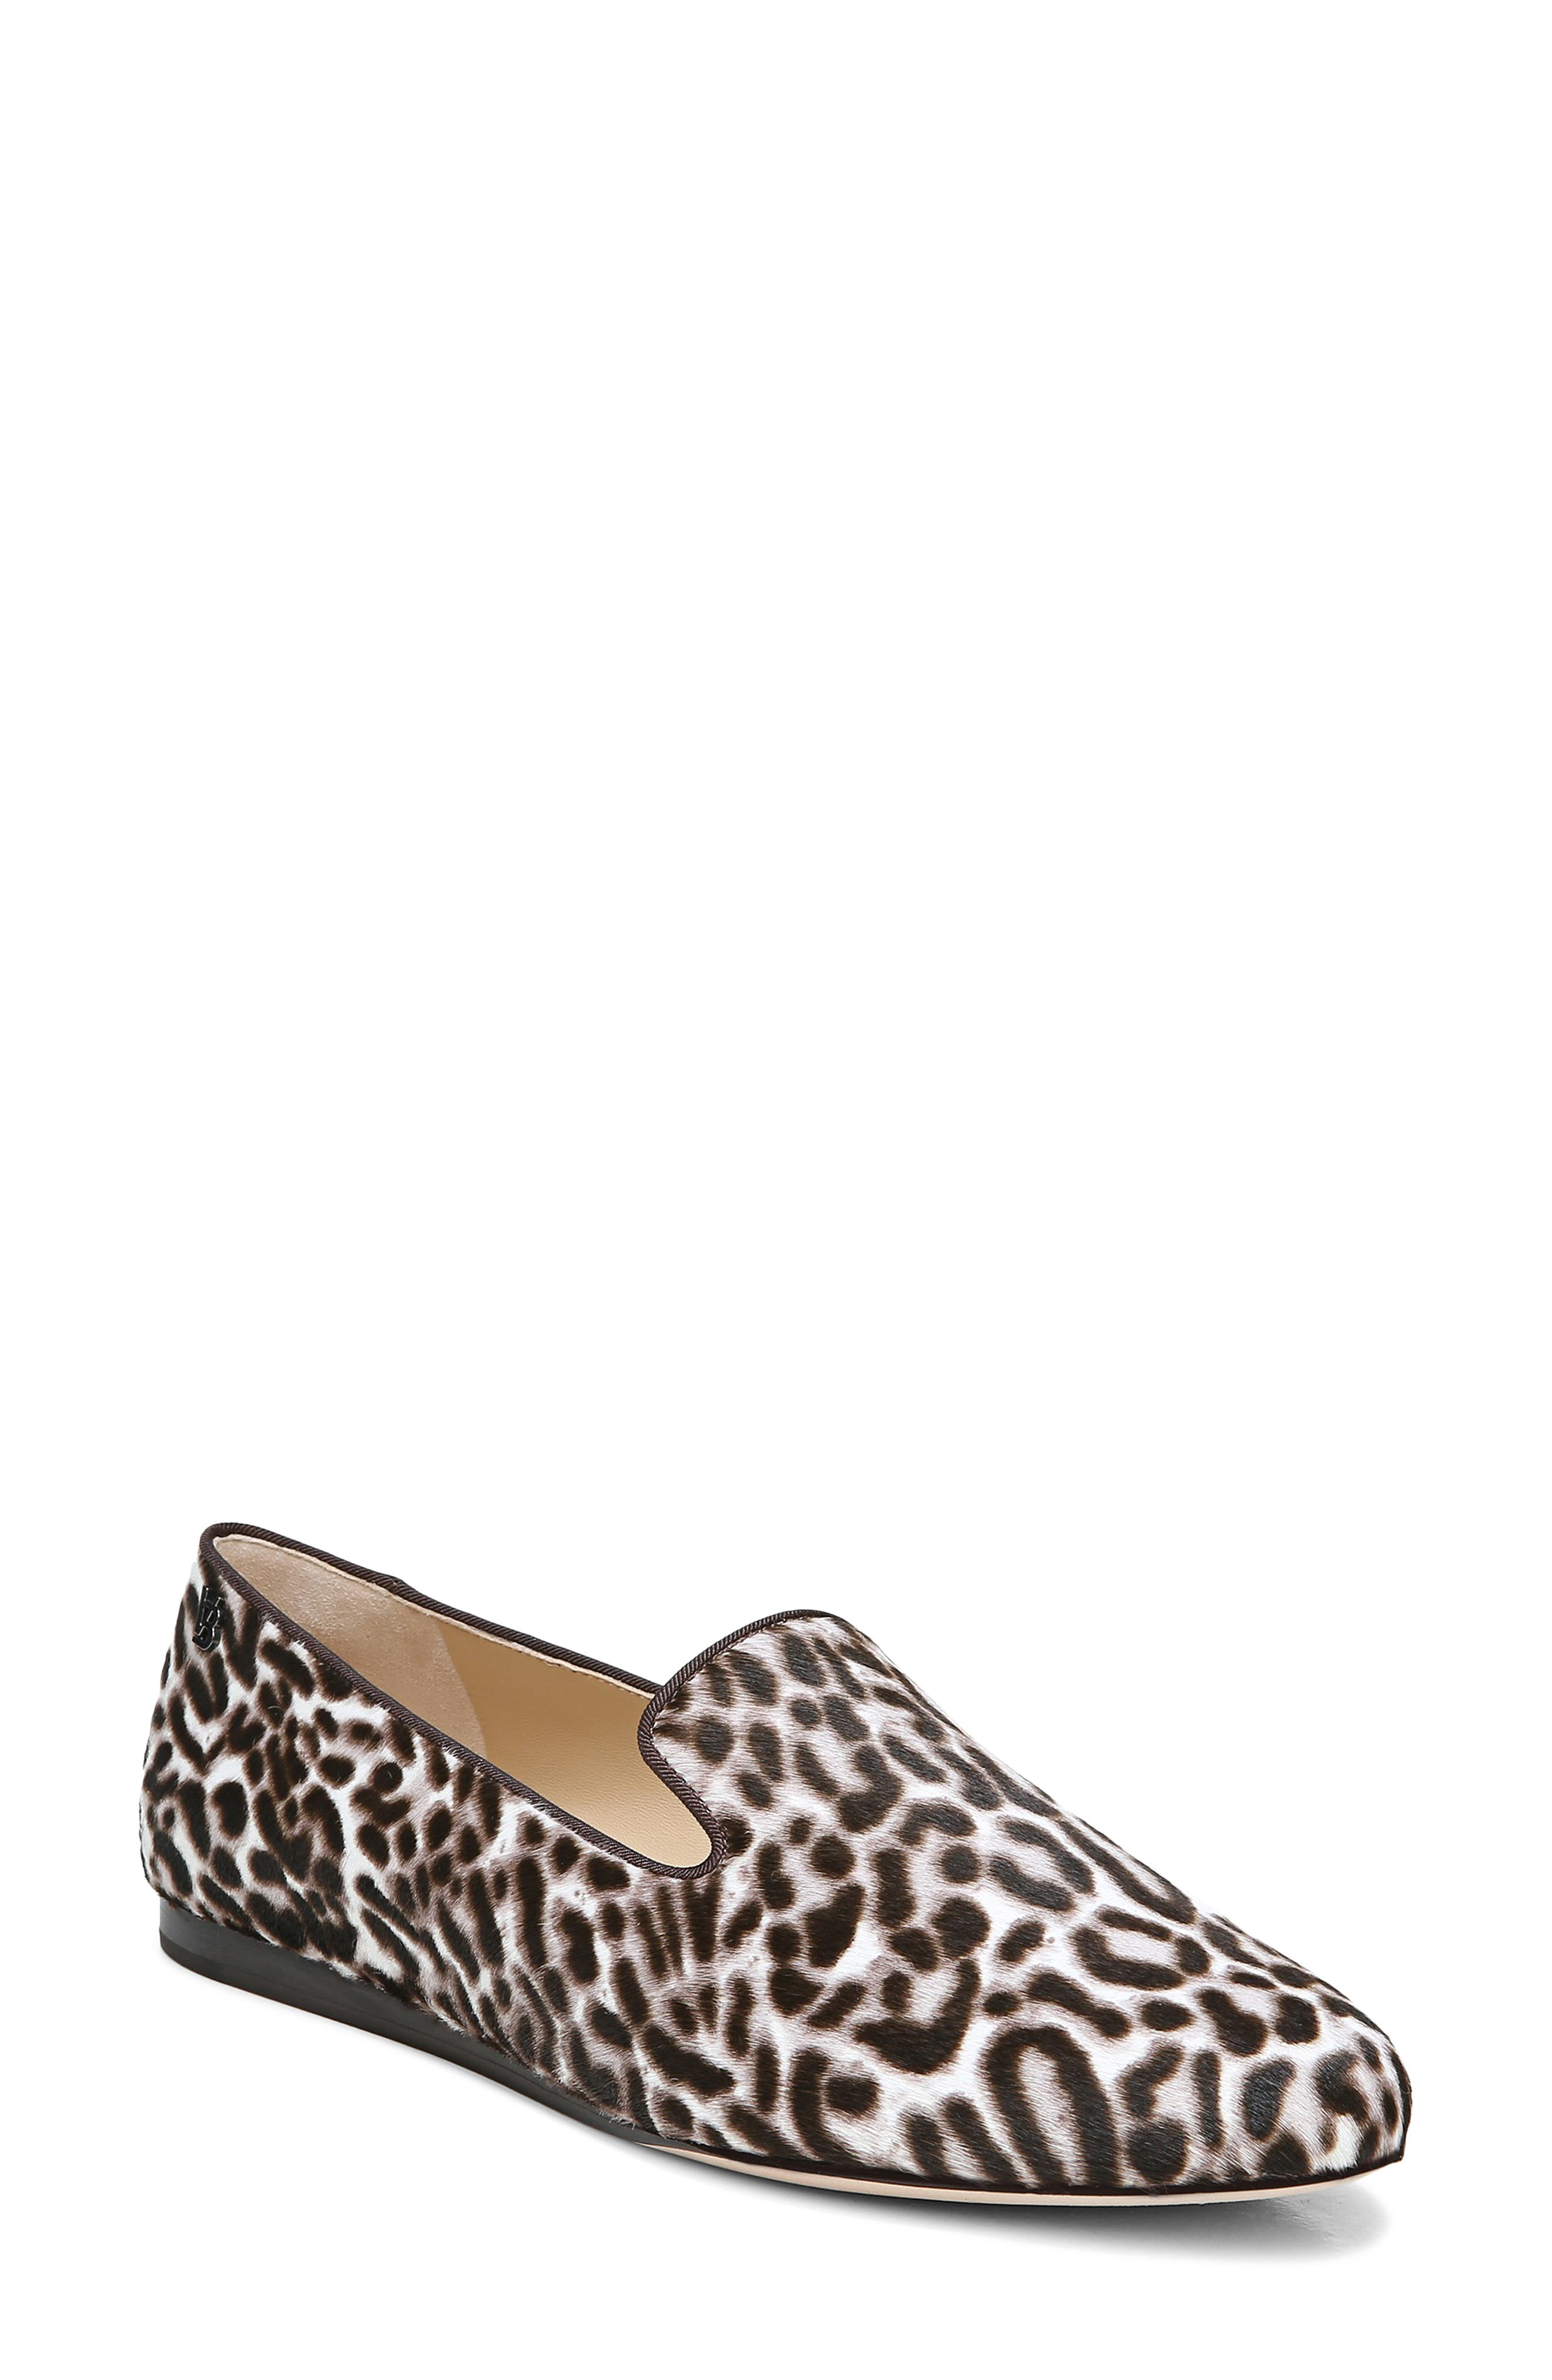 Image of VERONICA BEARD Griffin 2 Loafer